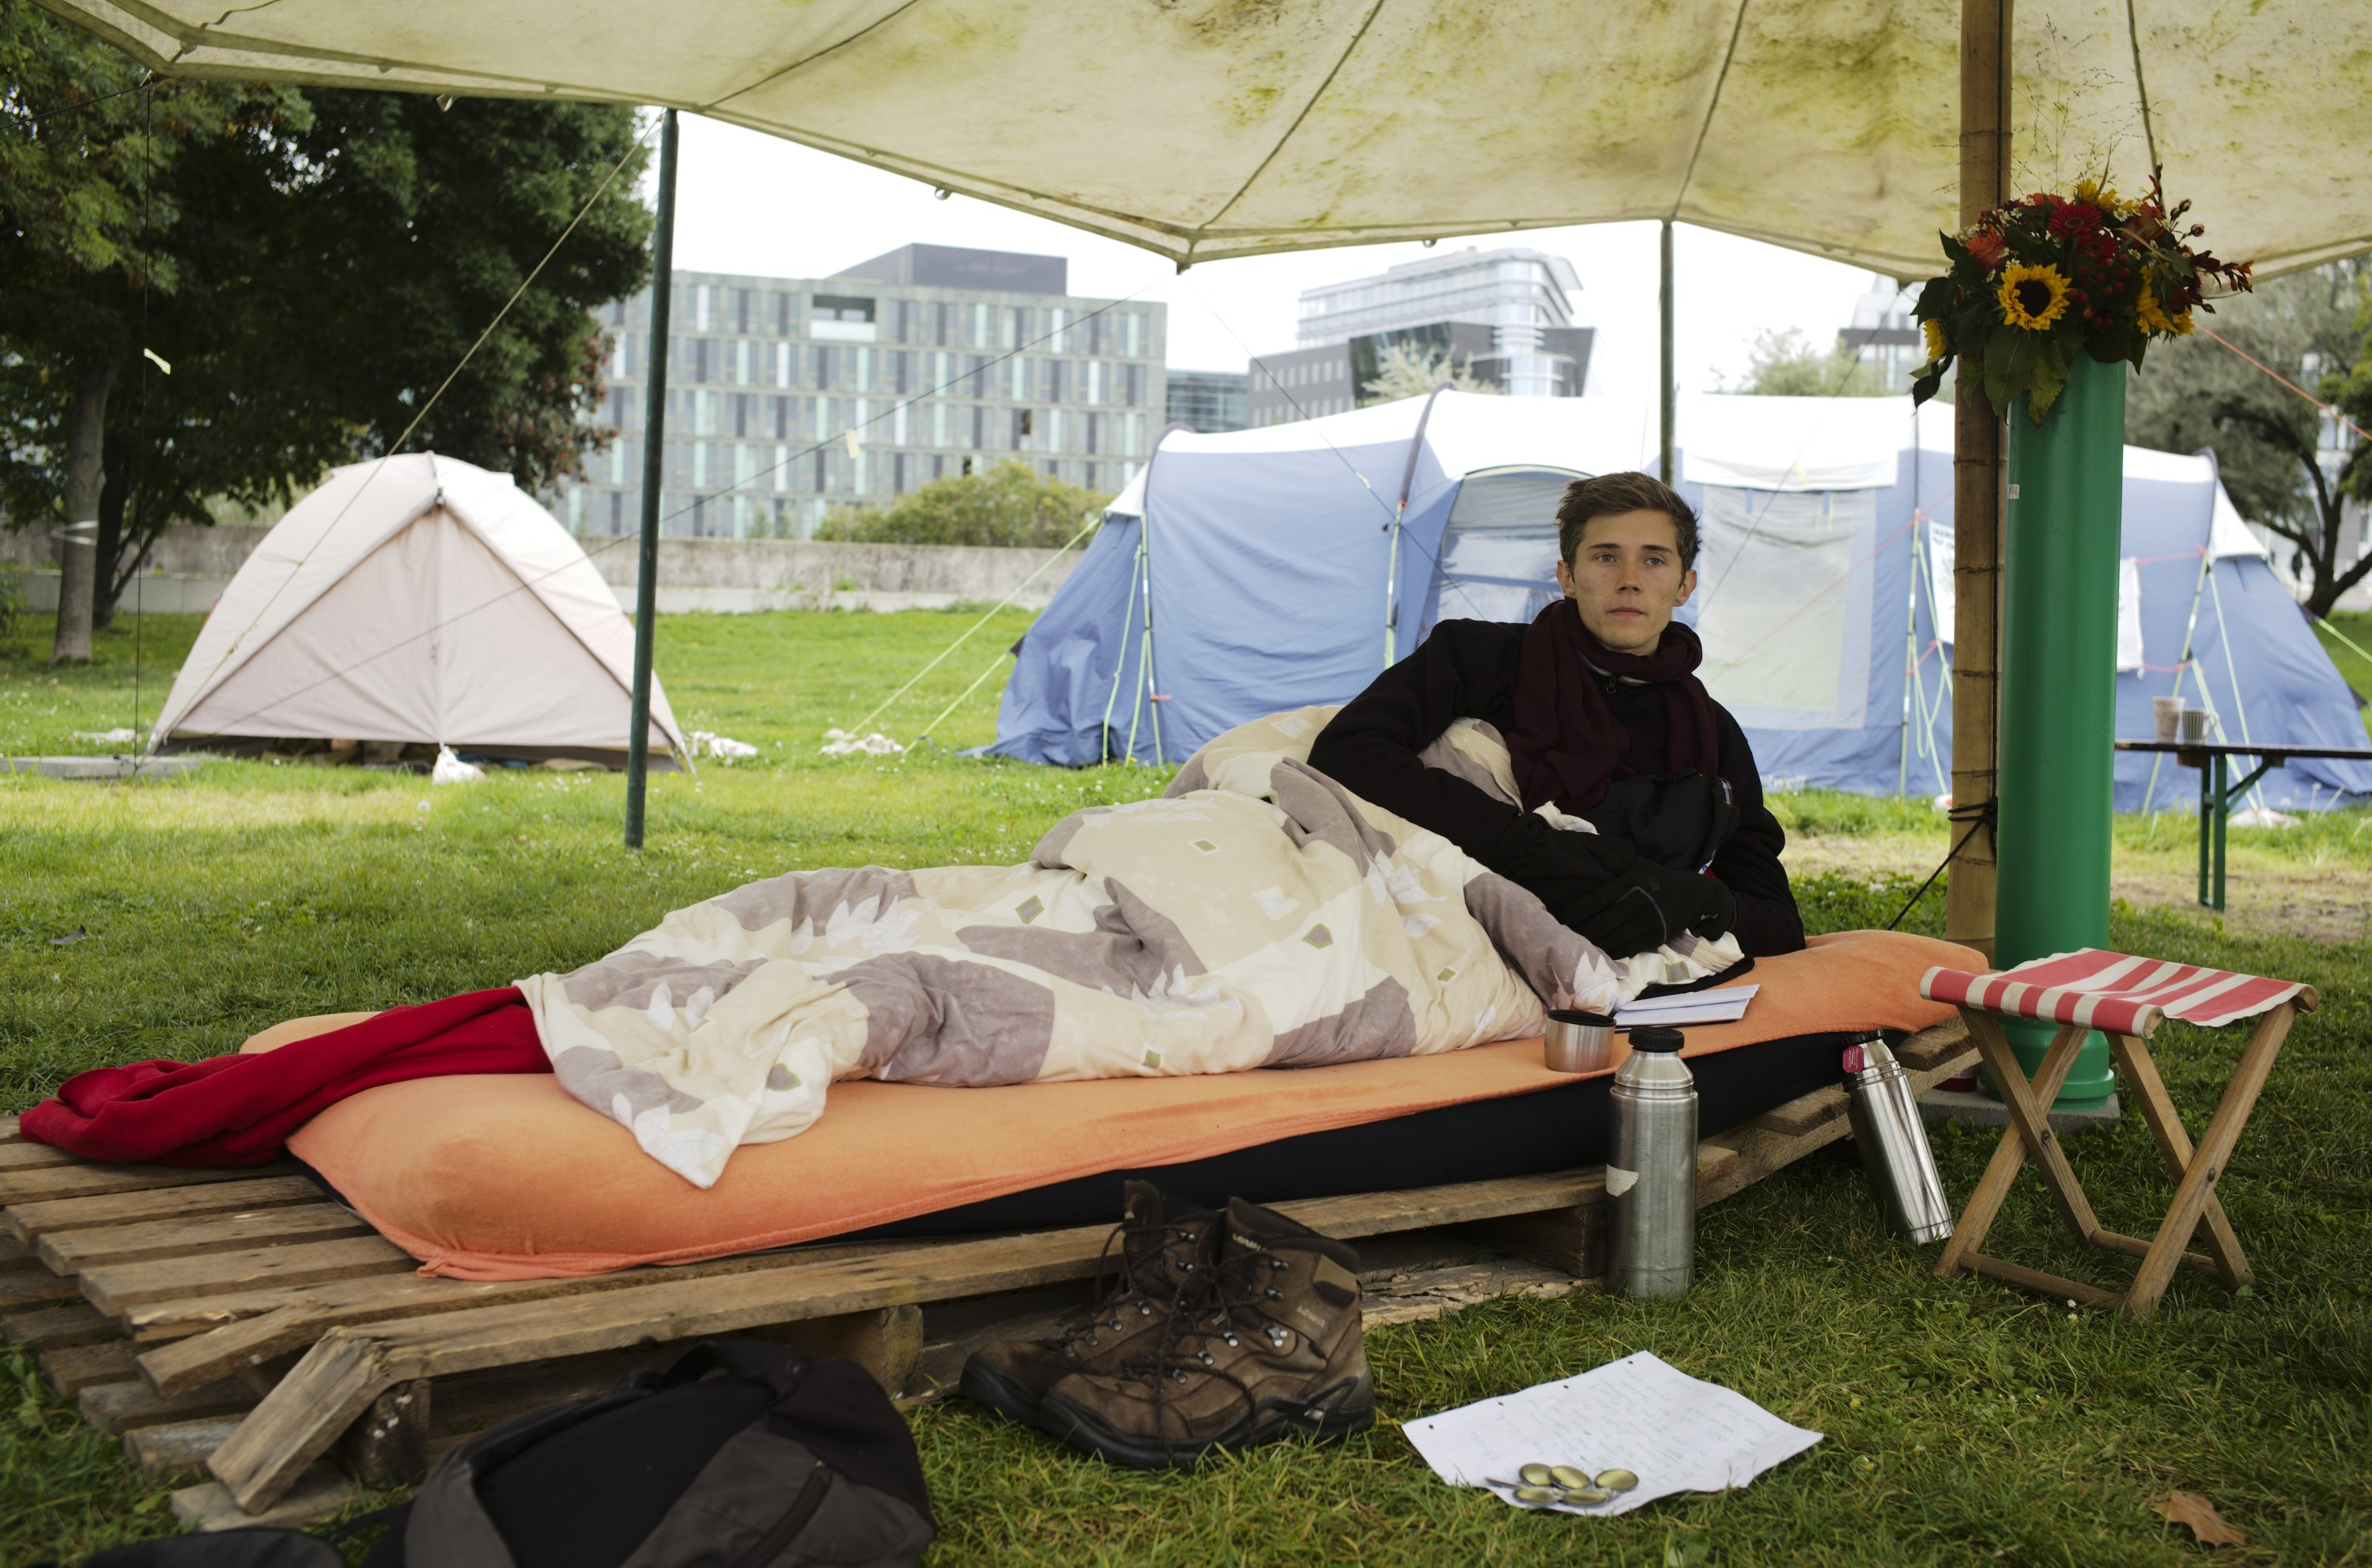 Climate activist Henning Jeschke, who has spent 24 days on a hunger strike, lays on a mattress under a tent in a small camp of climate activists as he poses for a photo in Berlin, Germany, Sept. 22, 2021. (AP Photo)